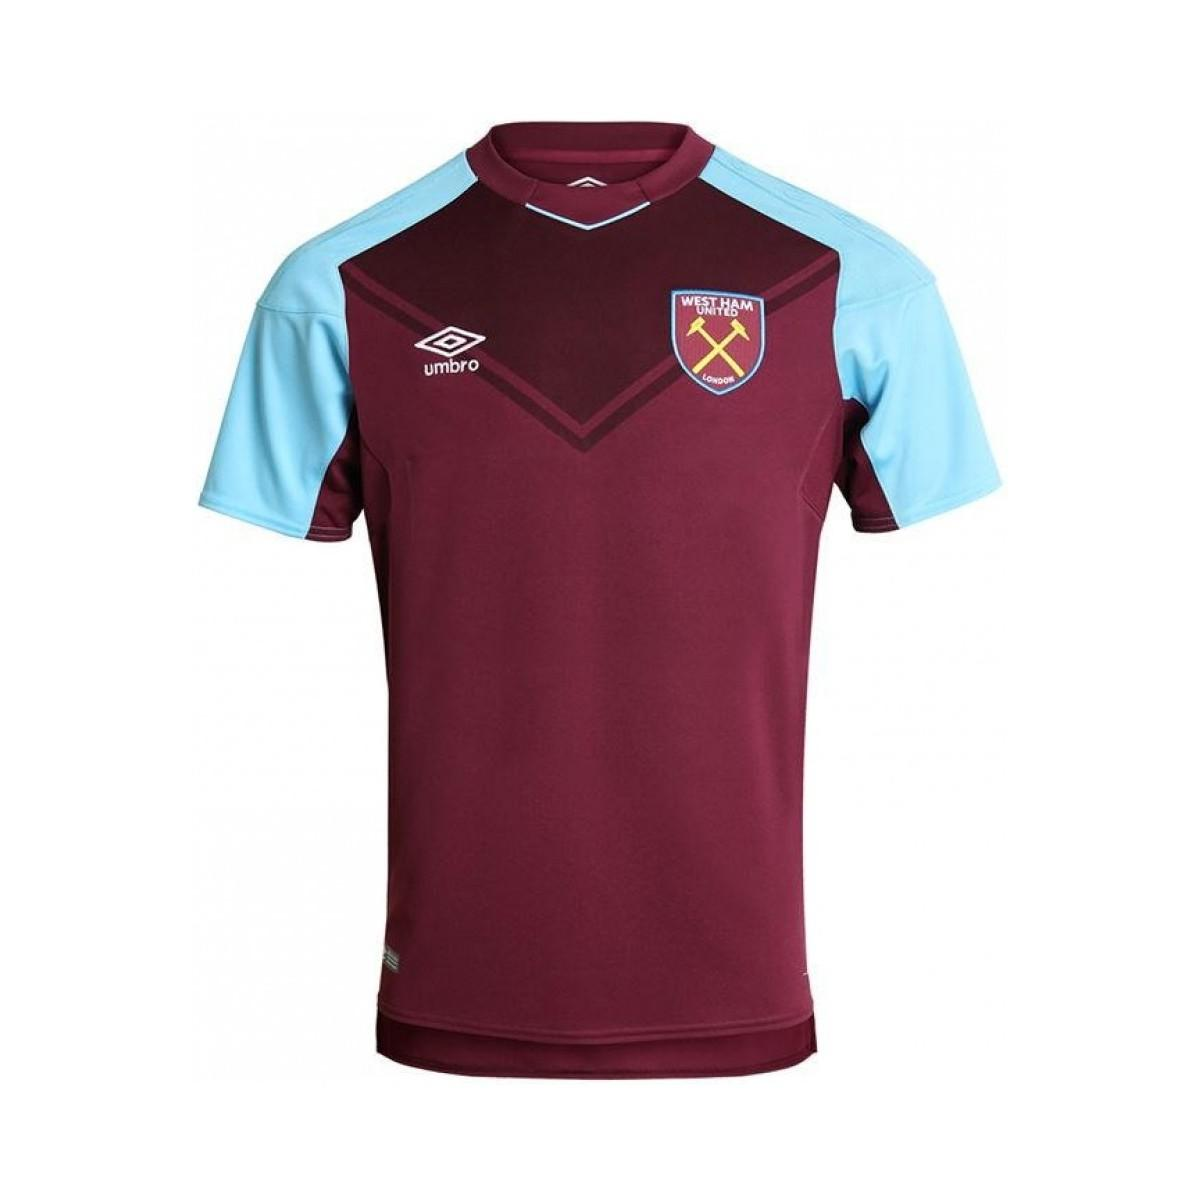 eeac8d99f Umbro - Red 2017-18 West Ham Home Shirt (chicharito 17) - Kids. View  fullscreen